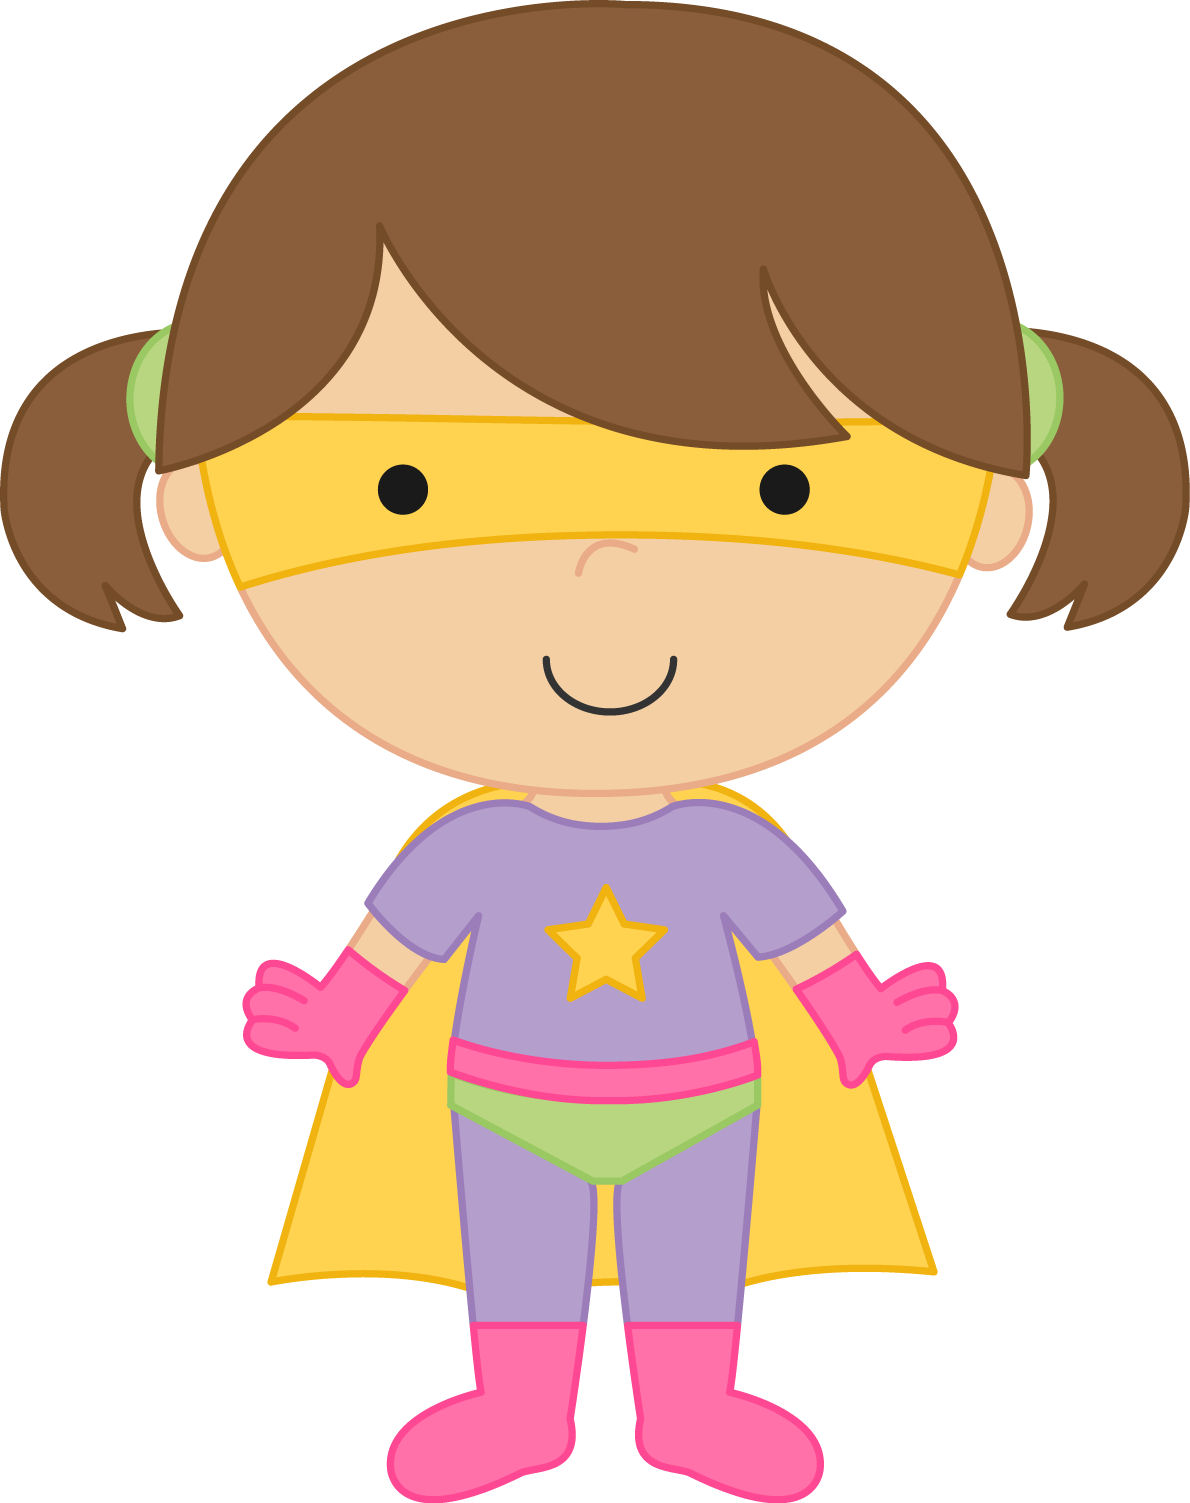 Bravery Clipart | Free download best Bravery Clipart on ...